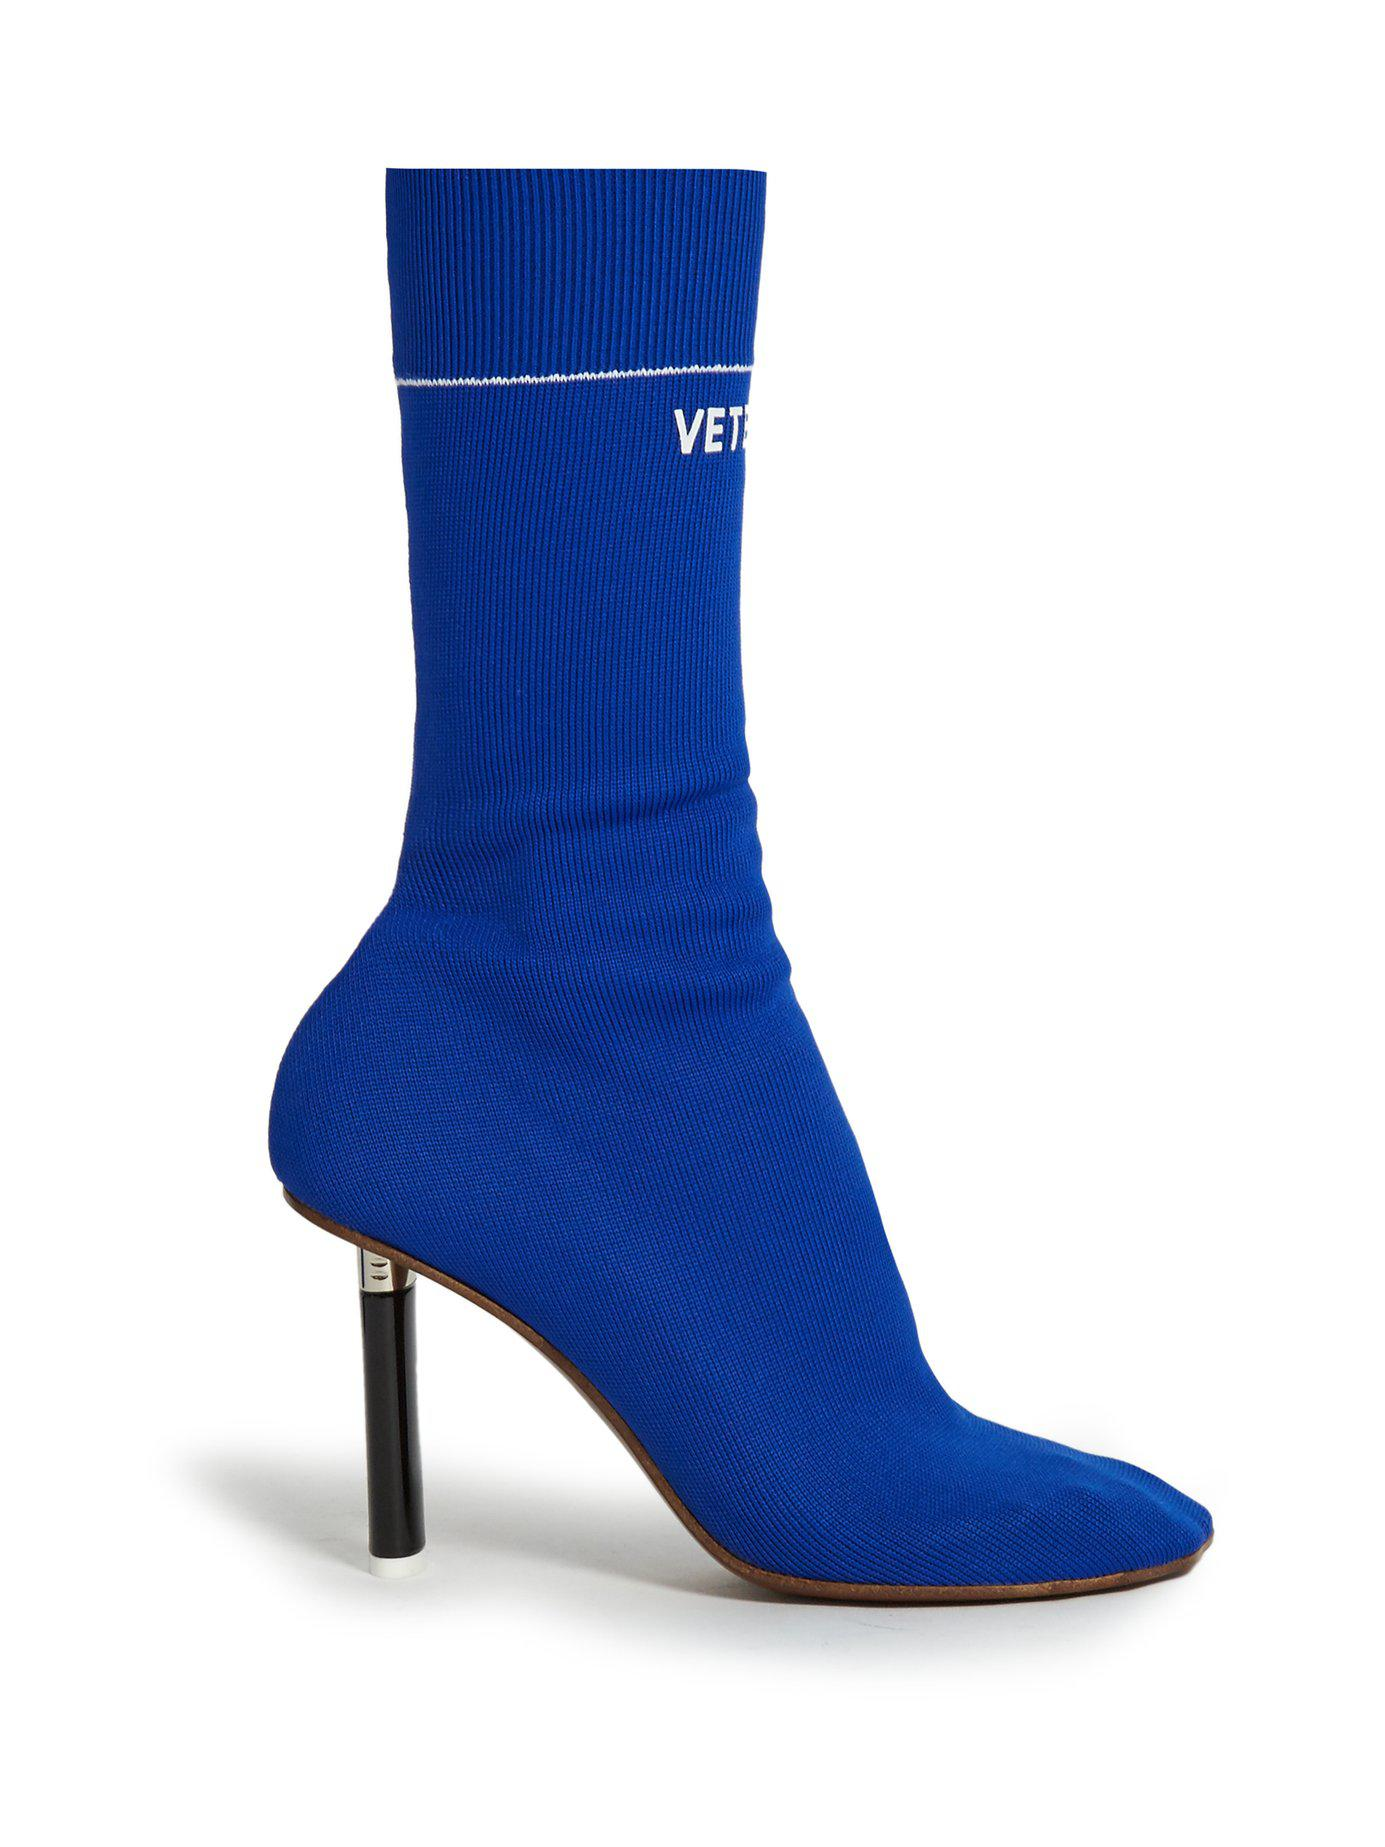 cfc973b14 Lyst - Vetements Lighter-heel Sock Ankle Boots in Blue